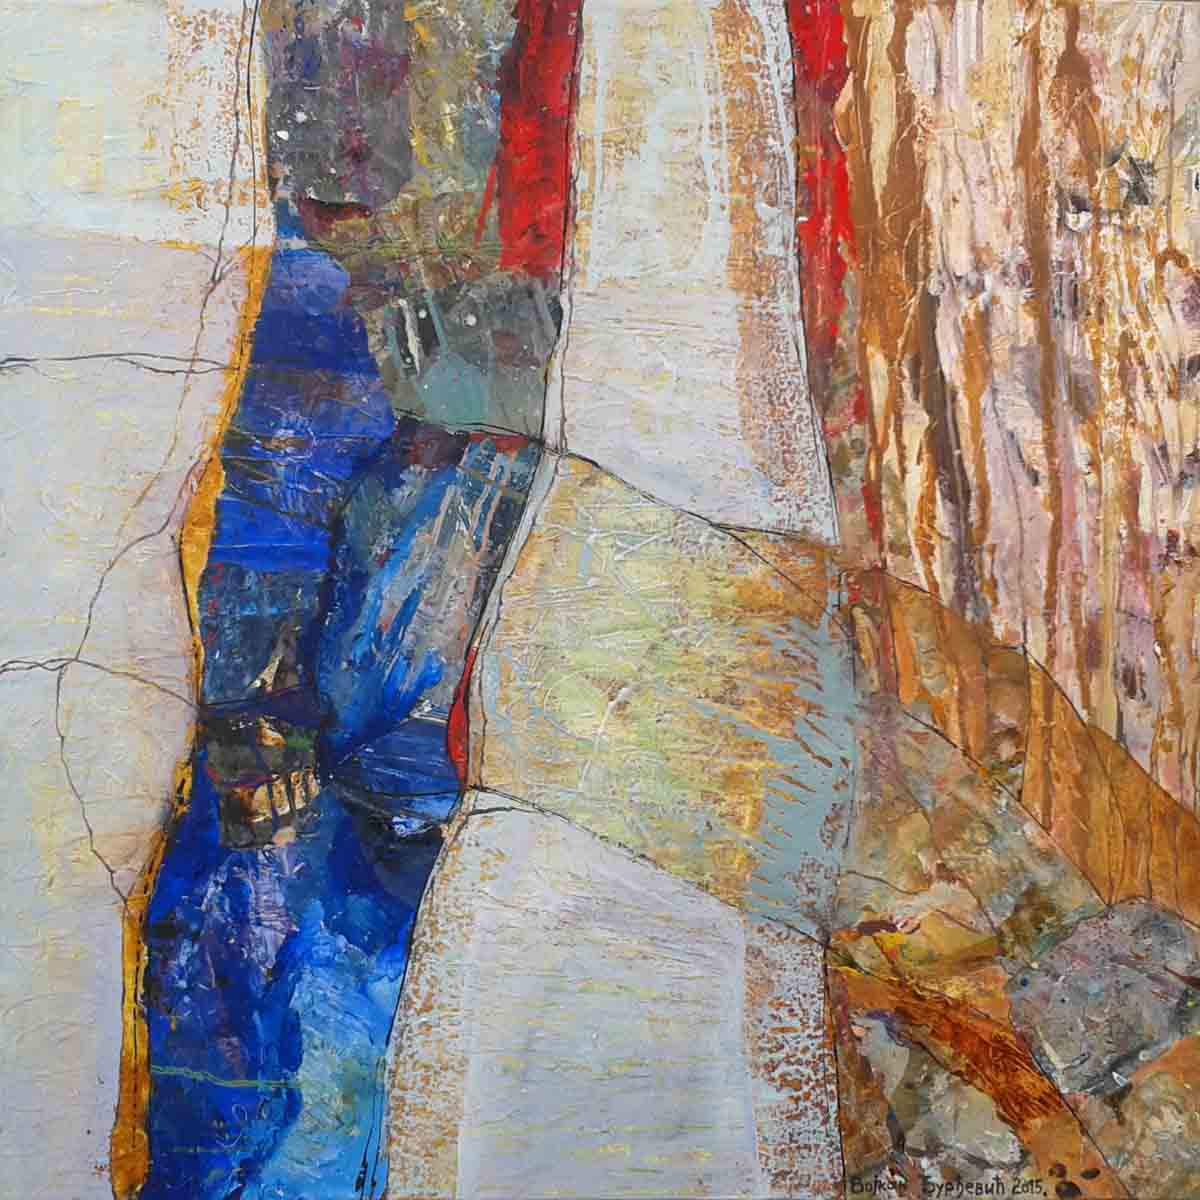 Grafting of the Wisdom, 70x70, Collage & Mixed Media on Canvas